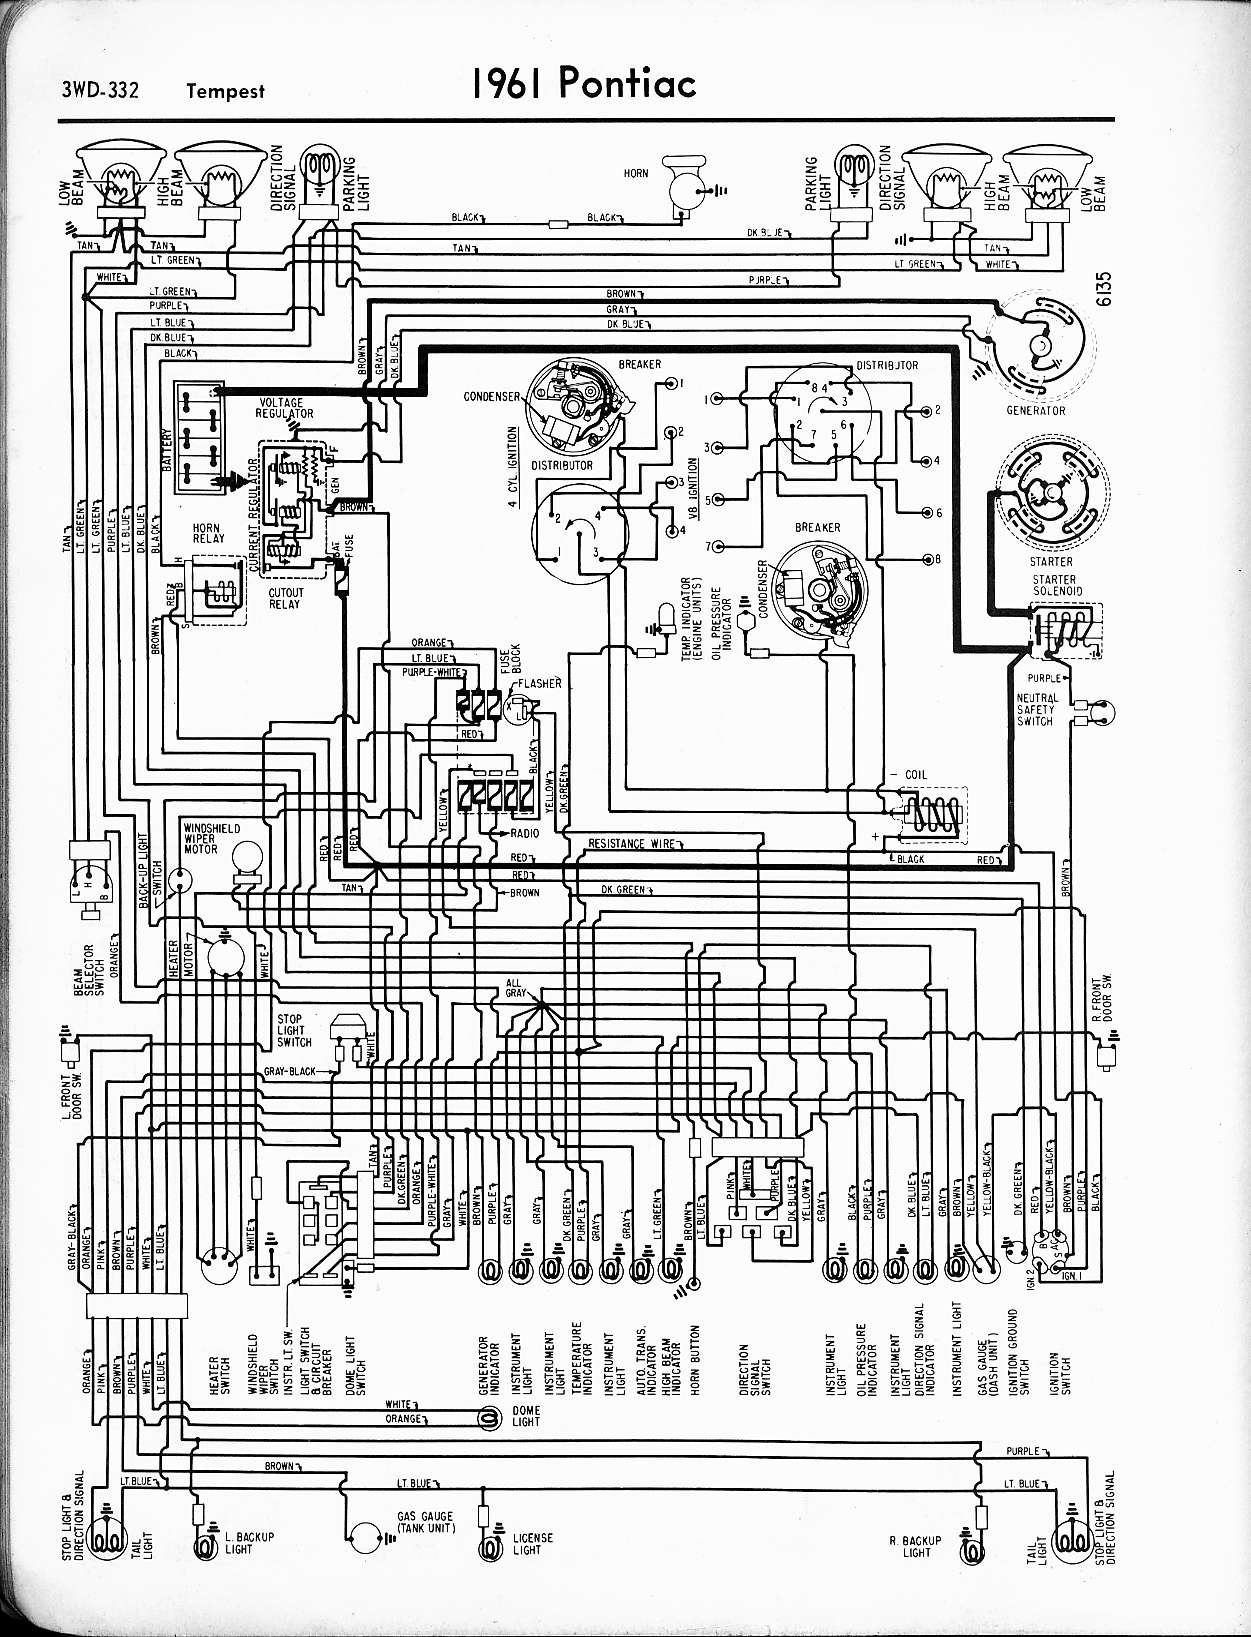 1958 Pontiac Wiring Diagram Simple Ranchero 1957 1965 1948